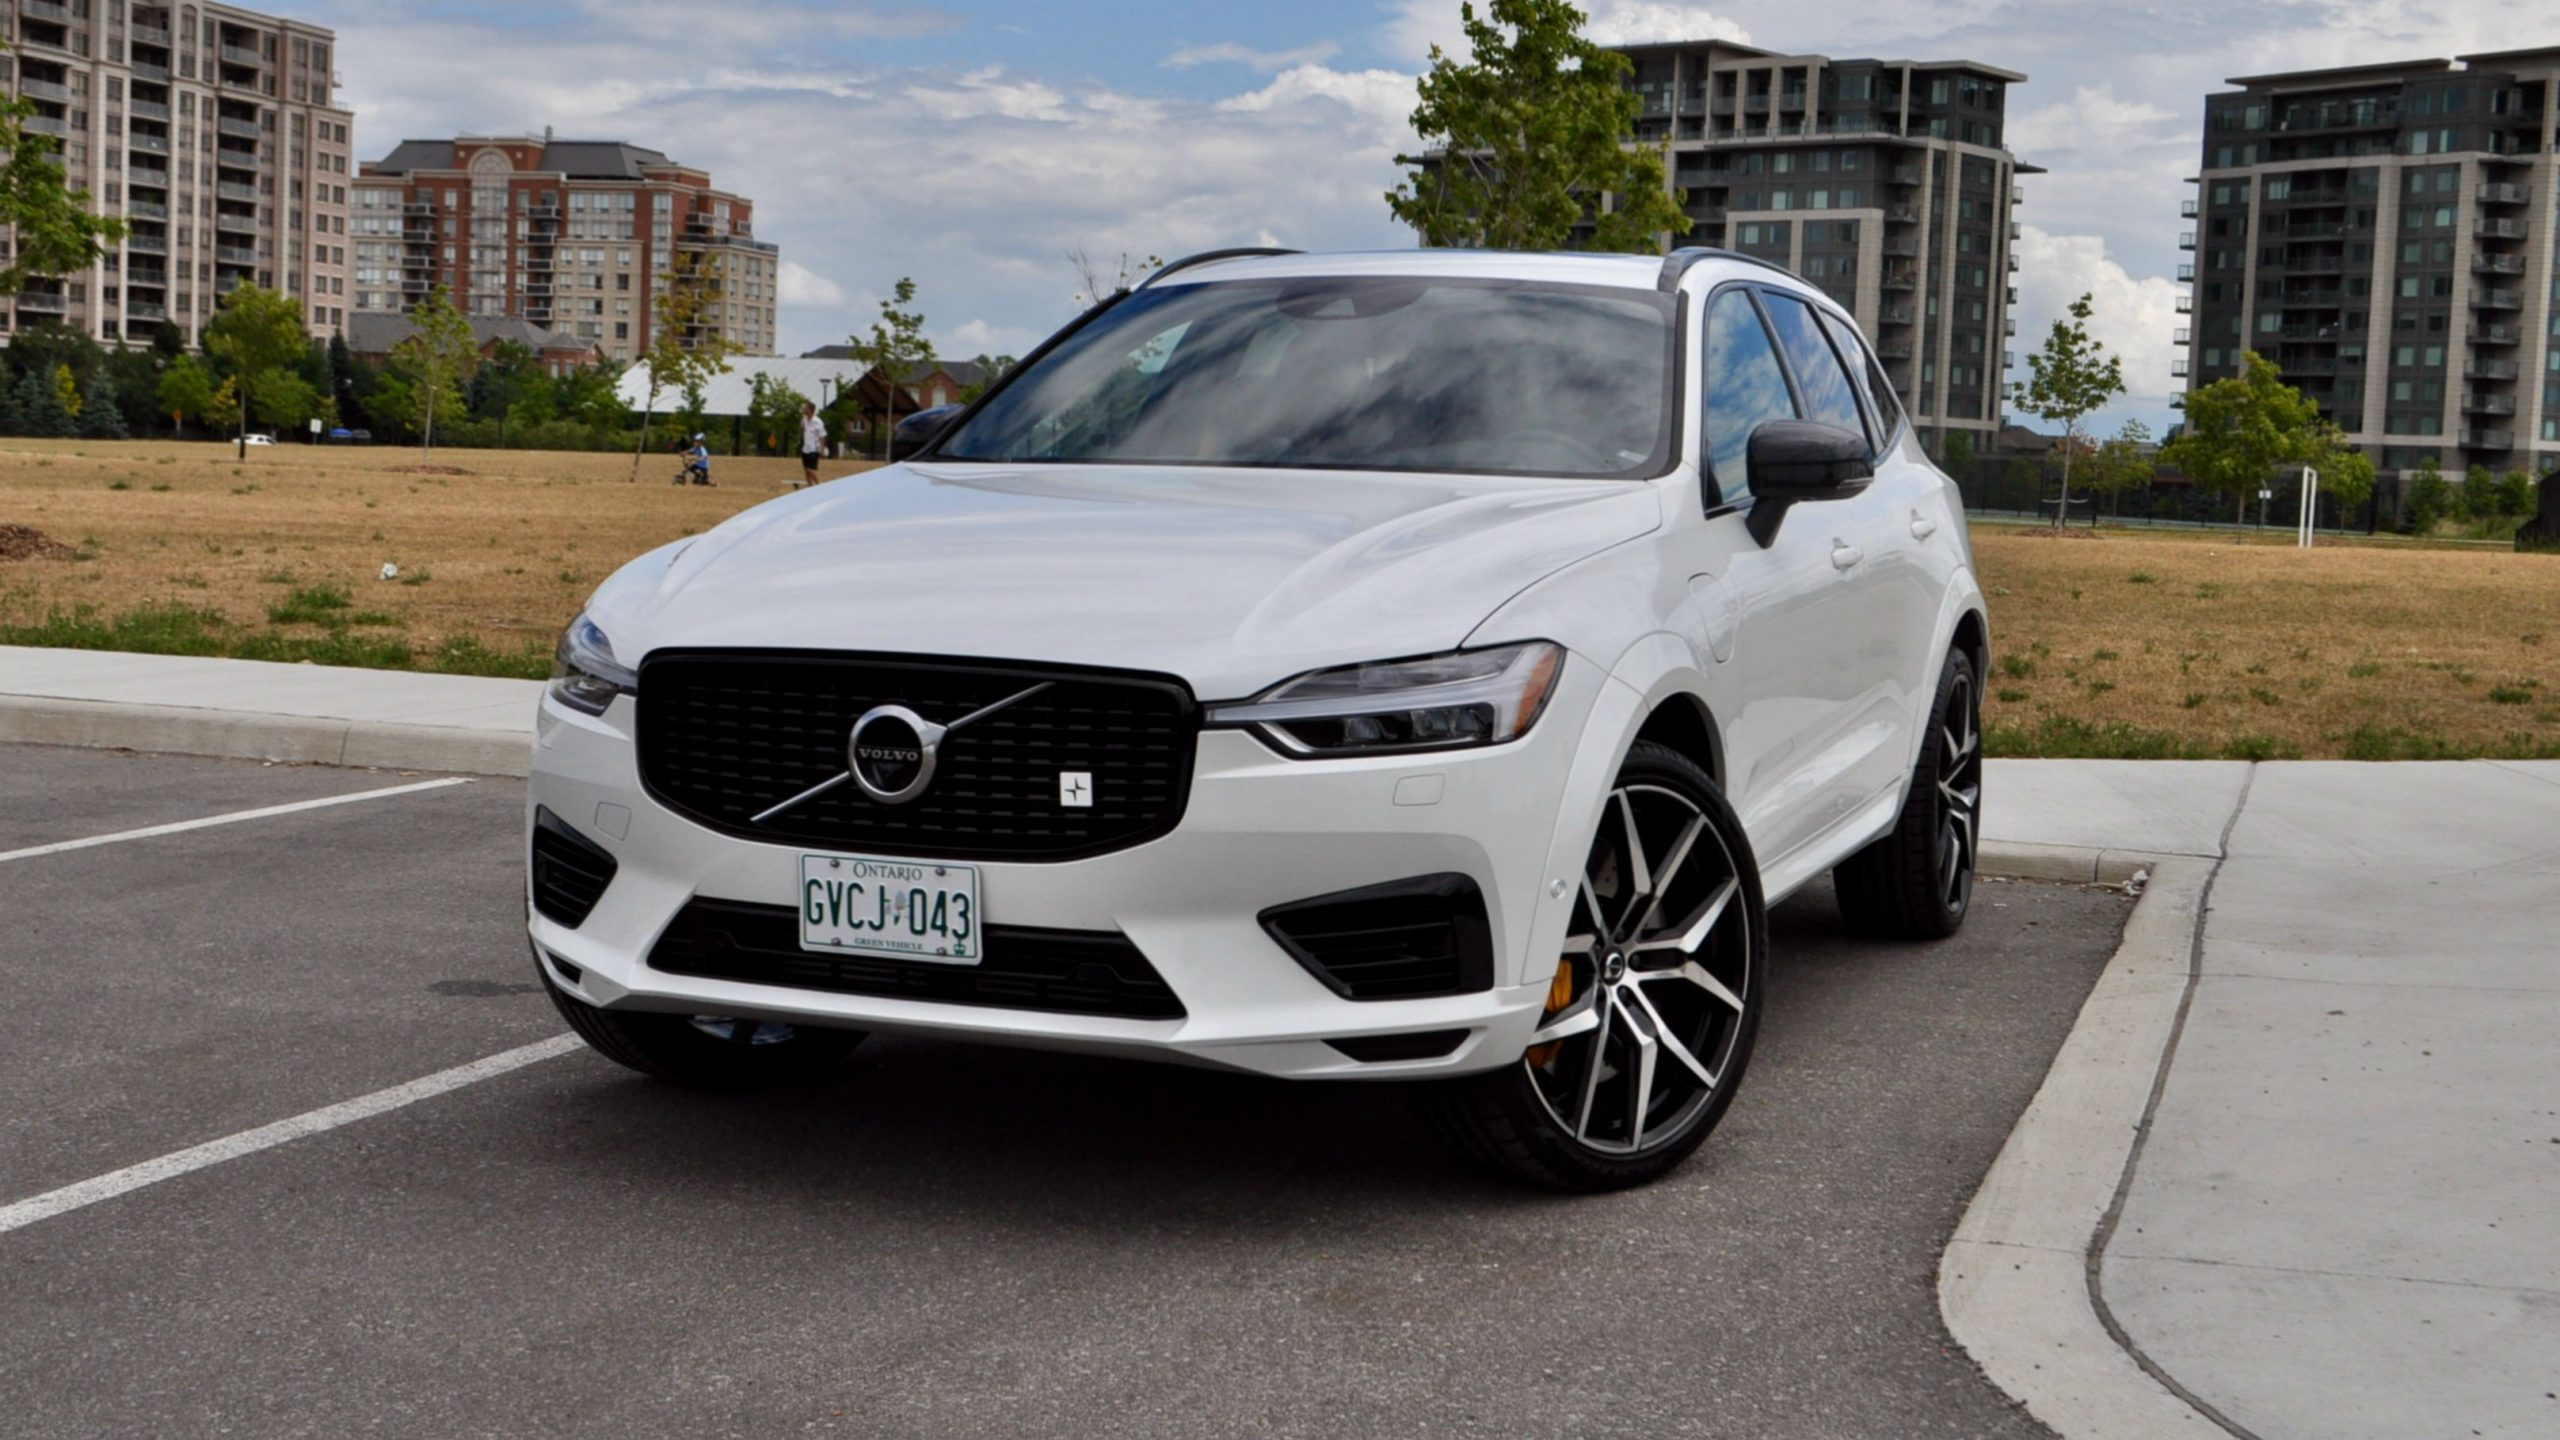 Review: 2020 Volvo XC60 T8 Polestar eAWD